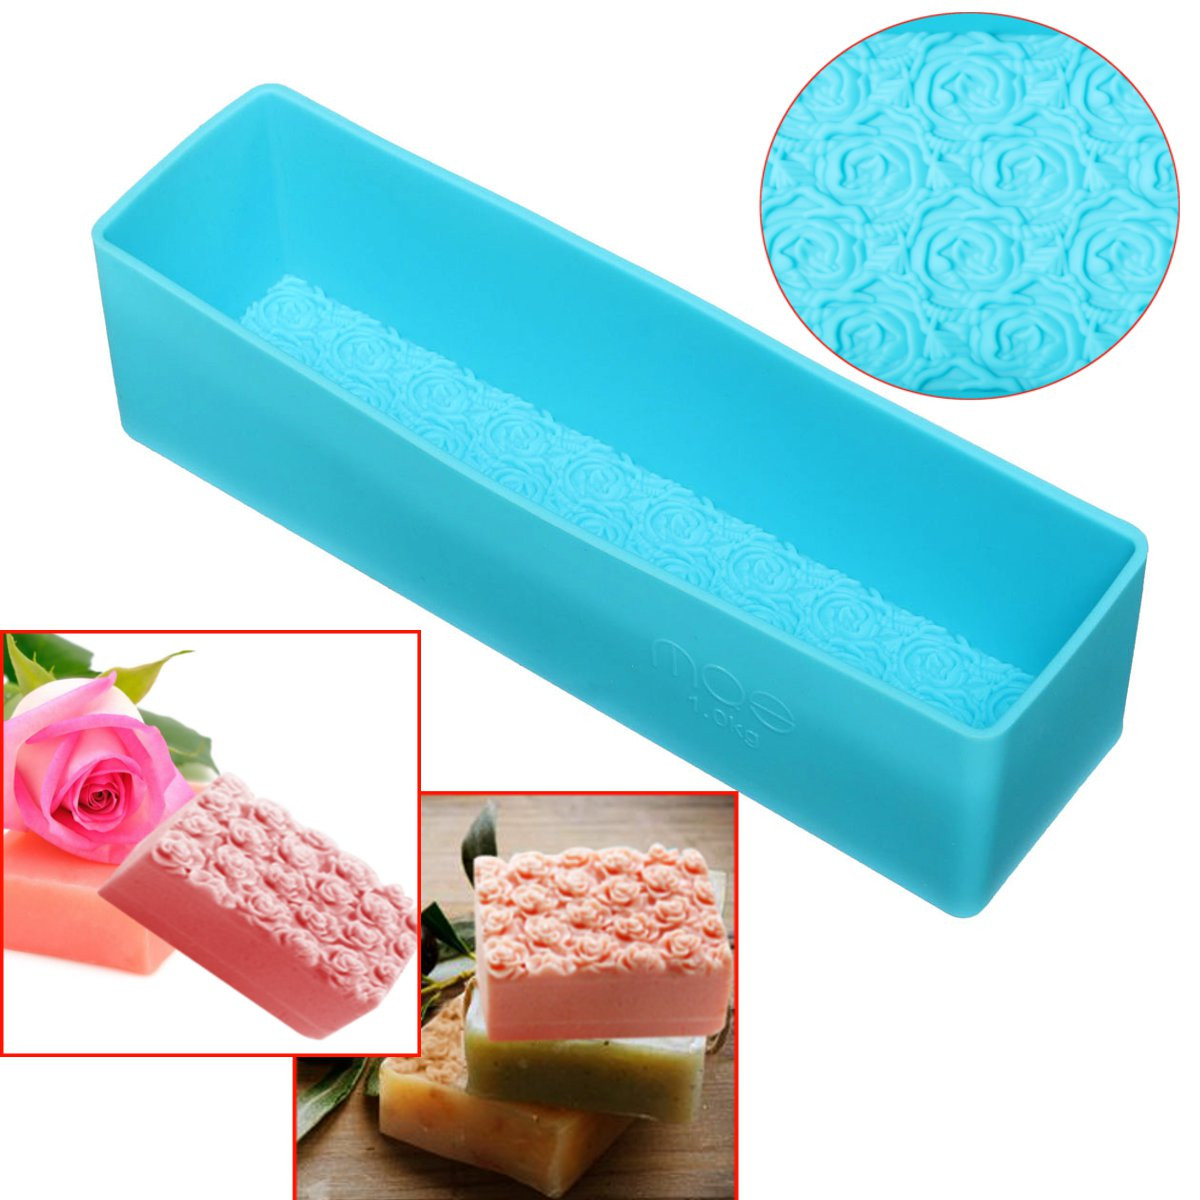 Wooden Loaf Cake Silicone Soap Mold Rose Toast Baking Bread Tools DIY Chocolate Mould Pastry Bread Cake Bakware Tools